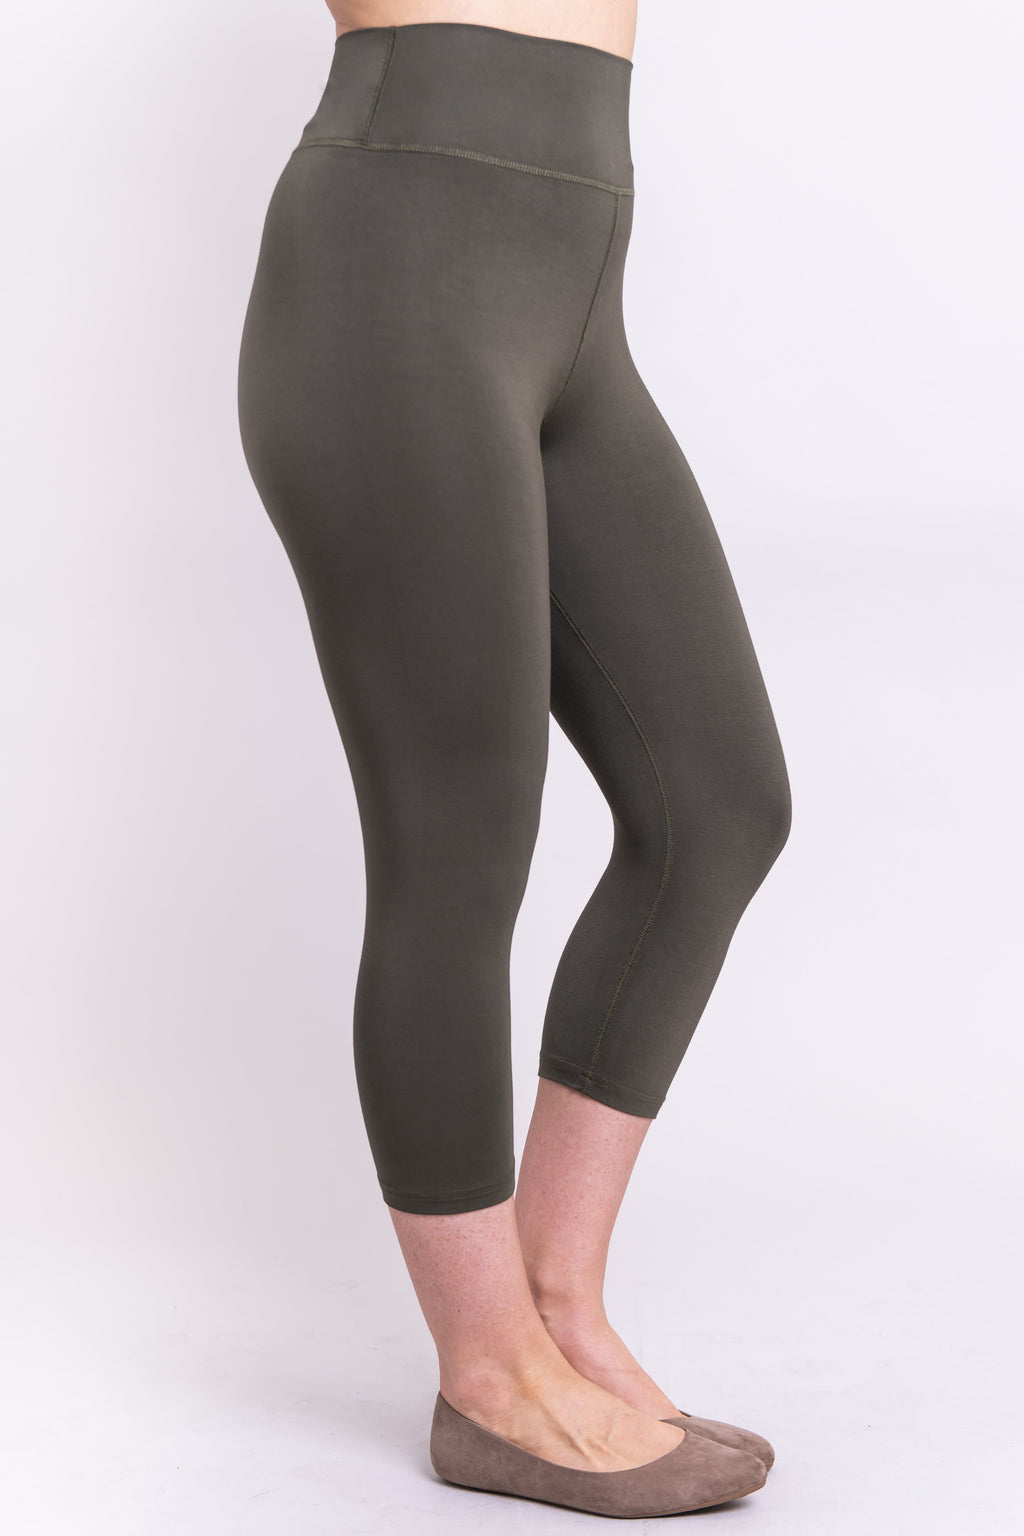 Riley Capri, Khaki, Bamboo - Blue Sky Clothing Co